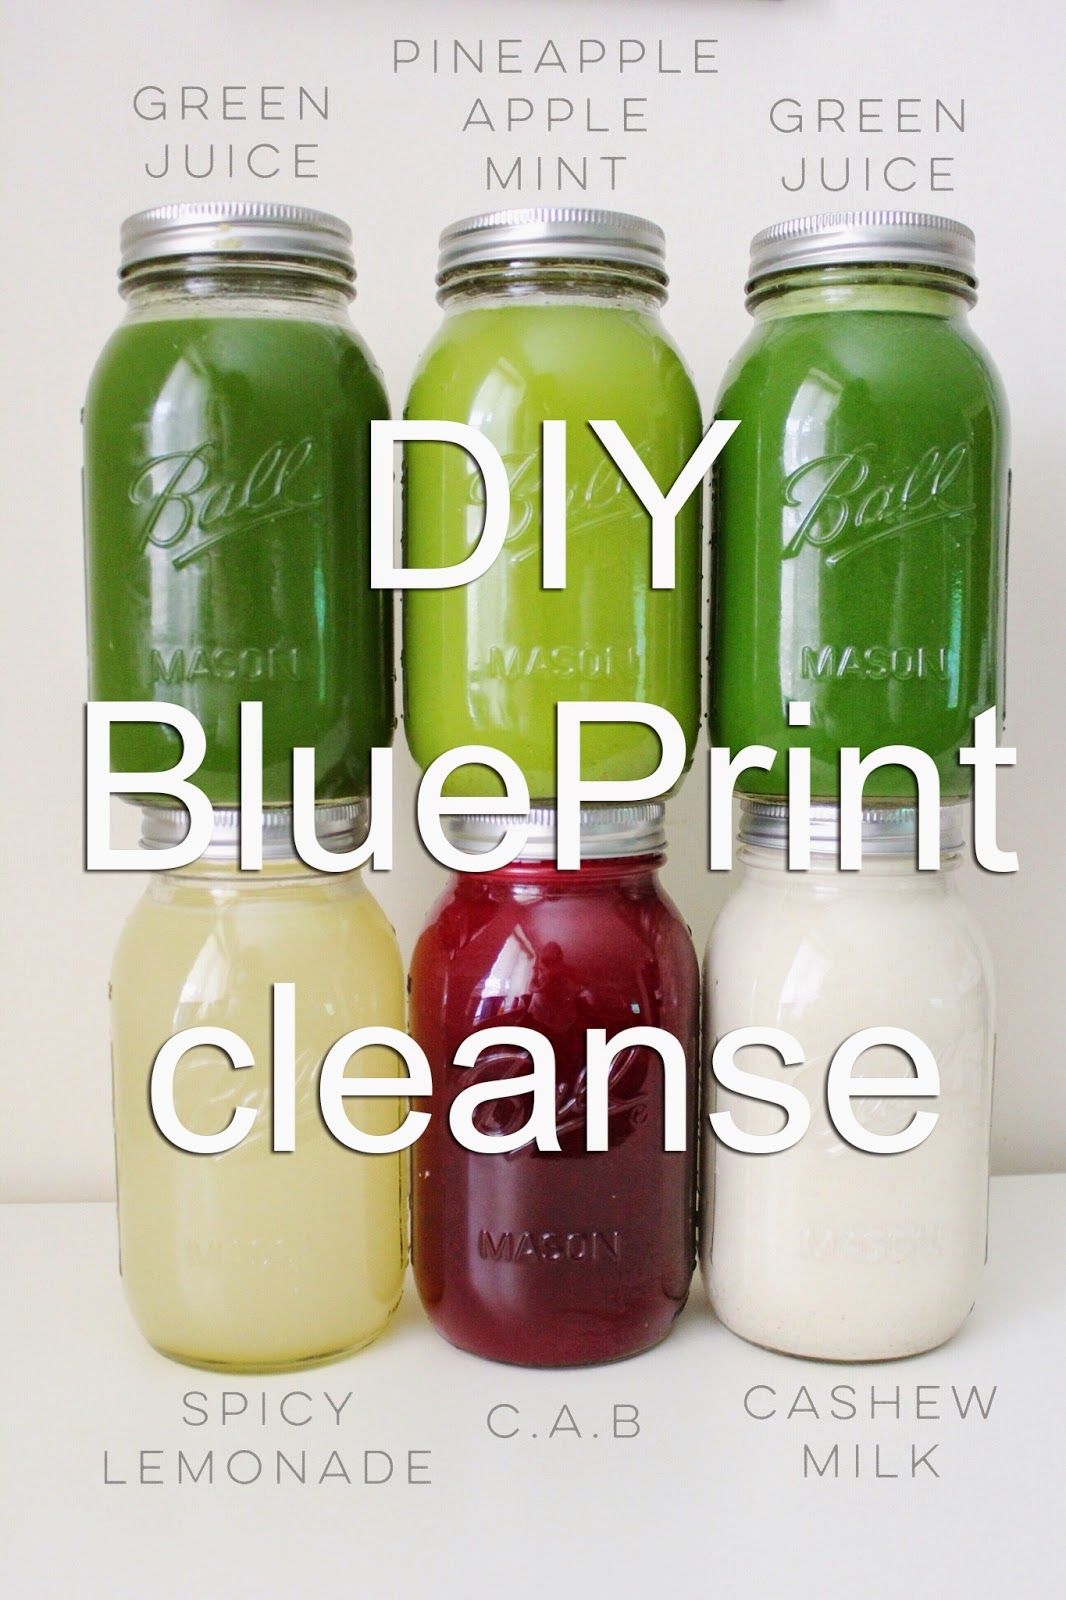 Best 25 blueprint cleanse ideas on pinterest blueprint juice best 25 blueprint cleanse ideas on pinterest blueprint juice homemade juice cleanse and 3 day juice cleanse malvernweather Images